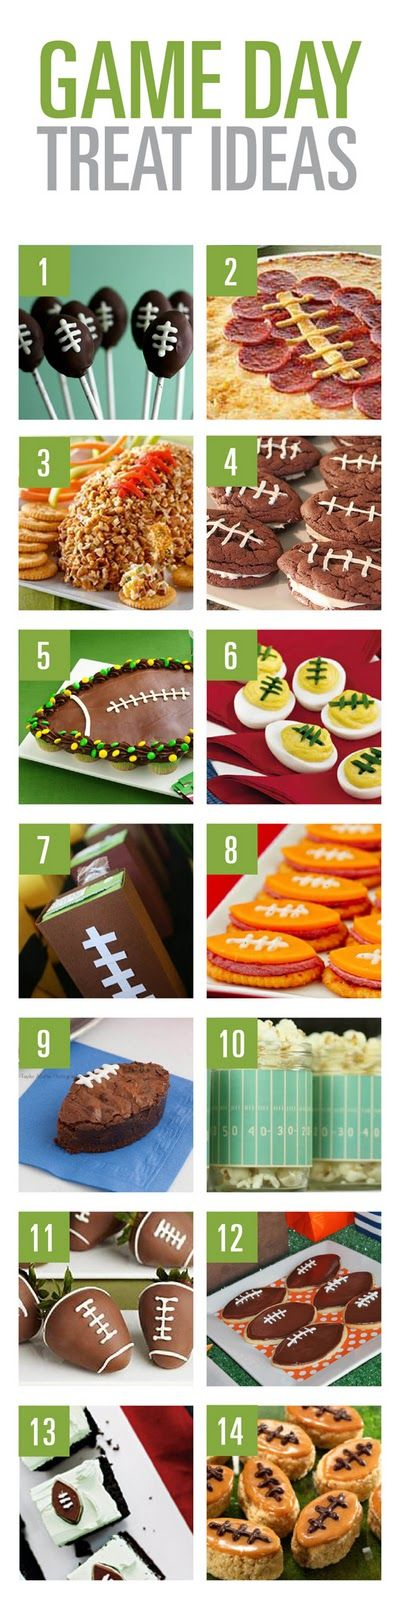 Football Treat Ideas.Football Treats, Football Seasons, Football Food, Treats Ideas, Games Day Food, Super Bowls, Football Parties, Tailgating Parties, Parties Treats